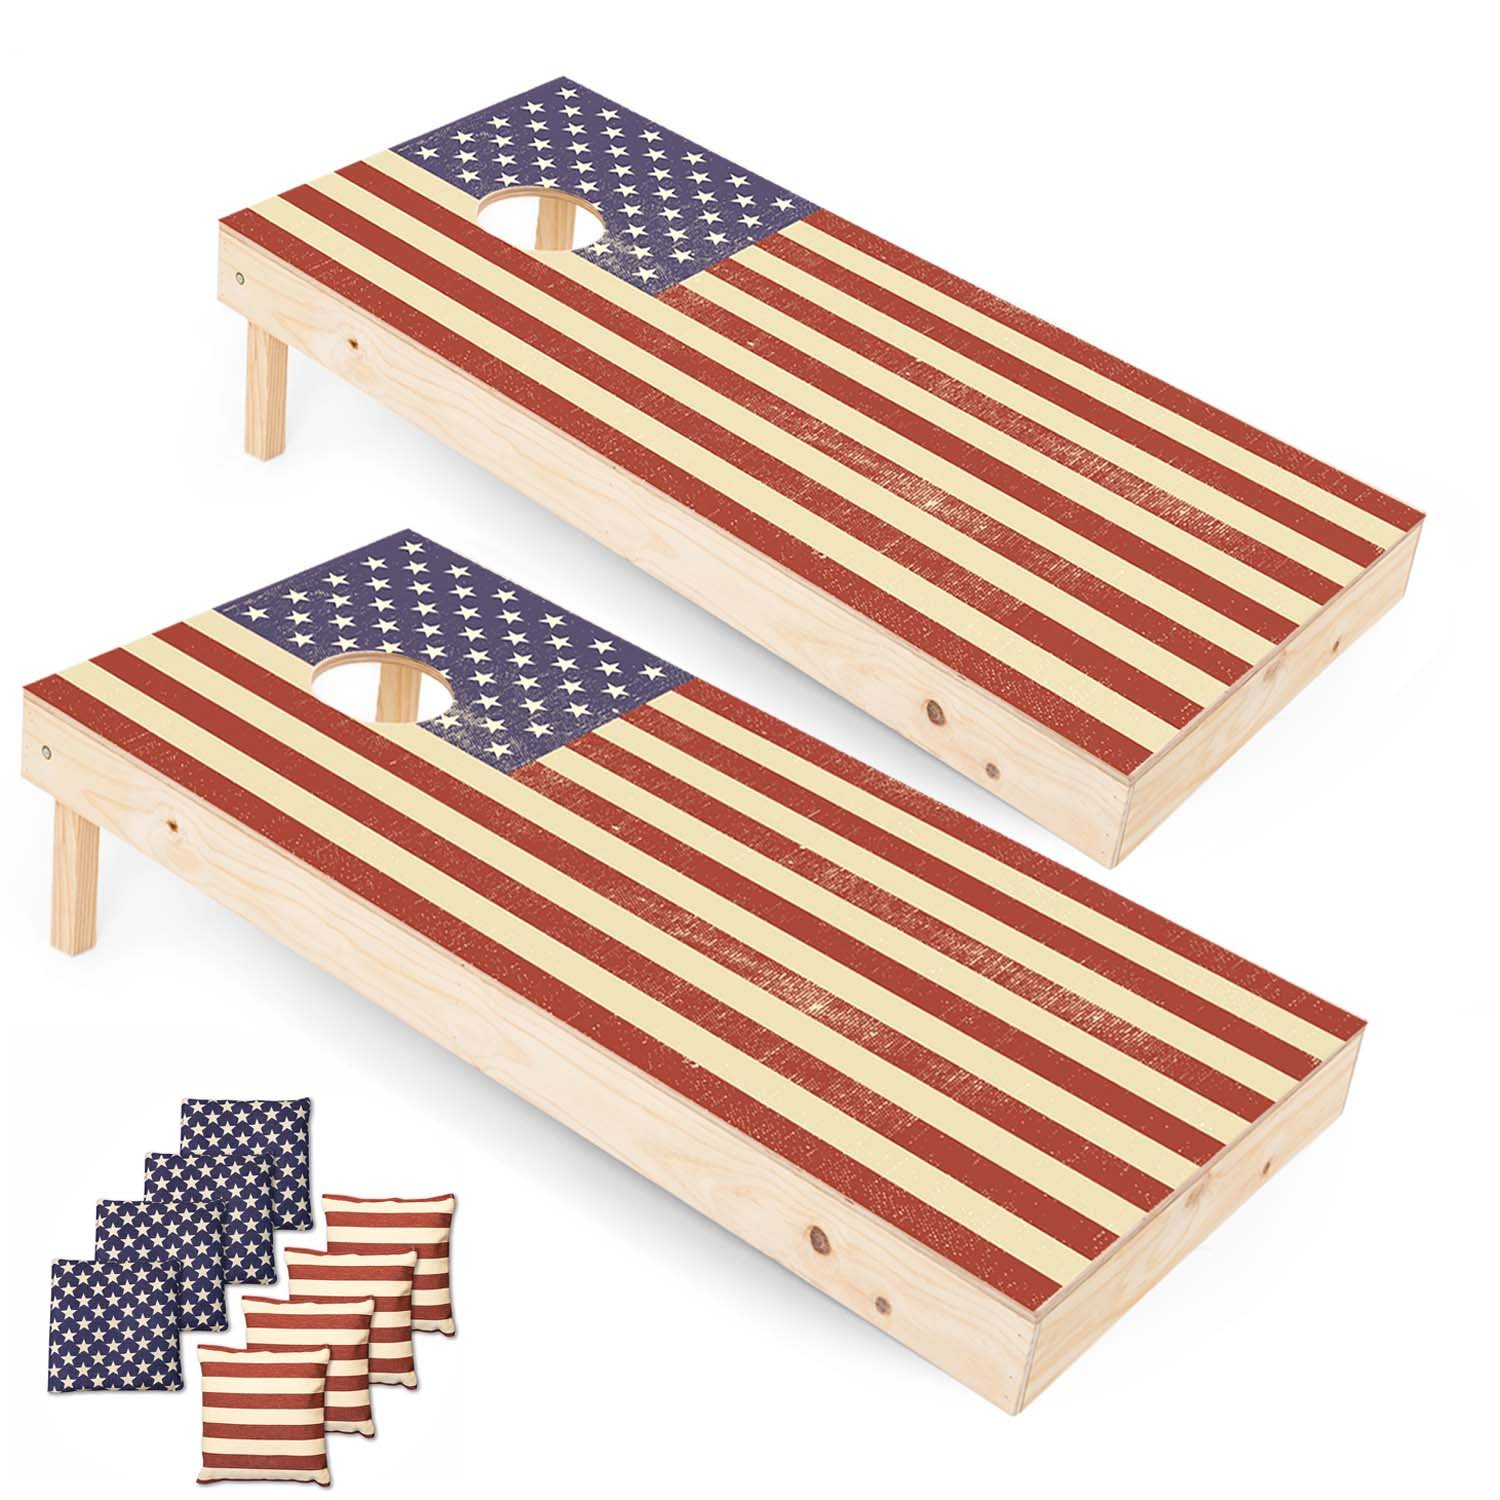 Play Platoon Regulation American Flag Cornhole Boards - 2 x 4 Ft Tournament Size Wooden Corn Hole Board Game Set by Play Platoon (Image #1)